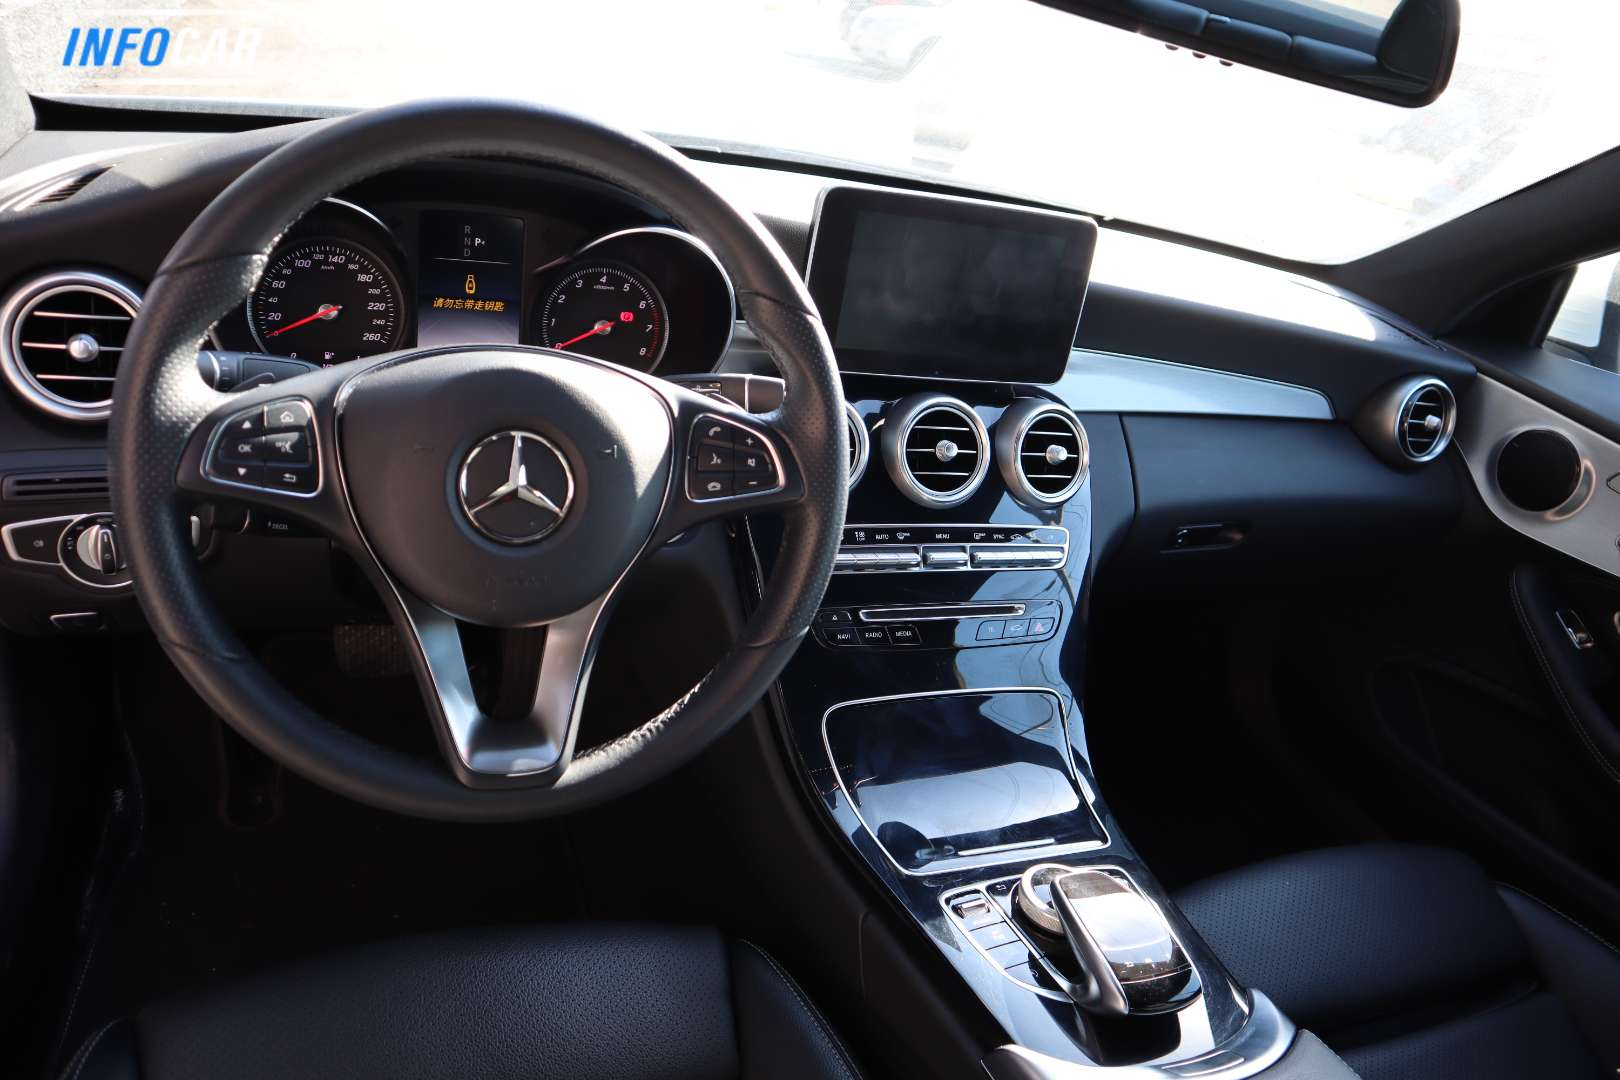 2017 Mercedes-Benz C-Class 300 coupe - INFOCAR - Toronto's Most Comprehensive New and Used Auto Trading Platform